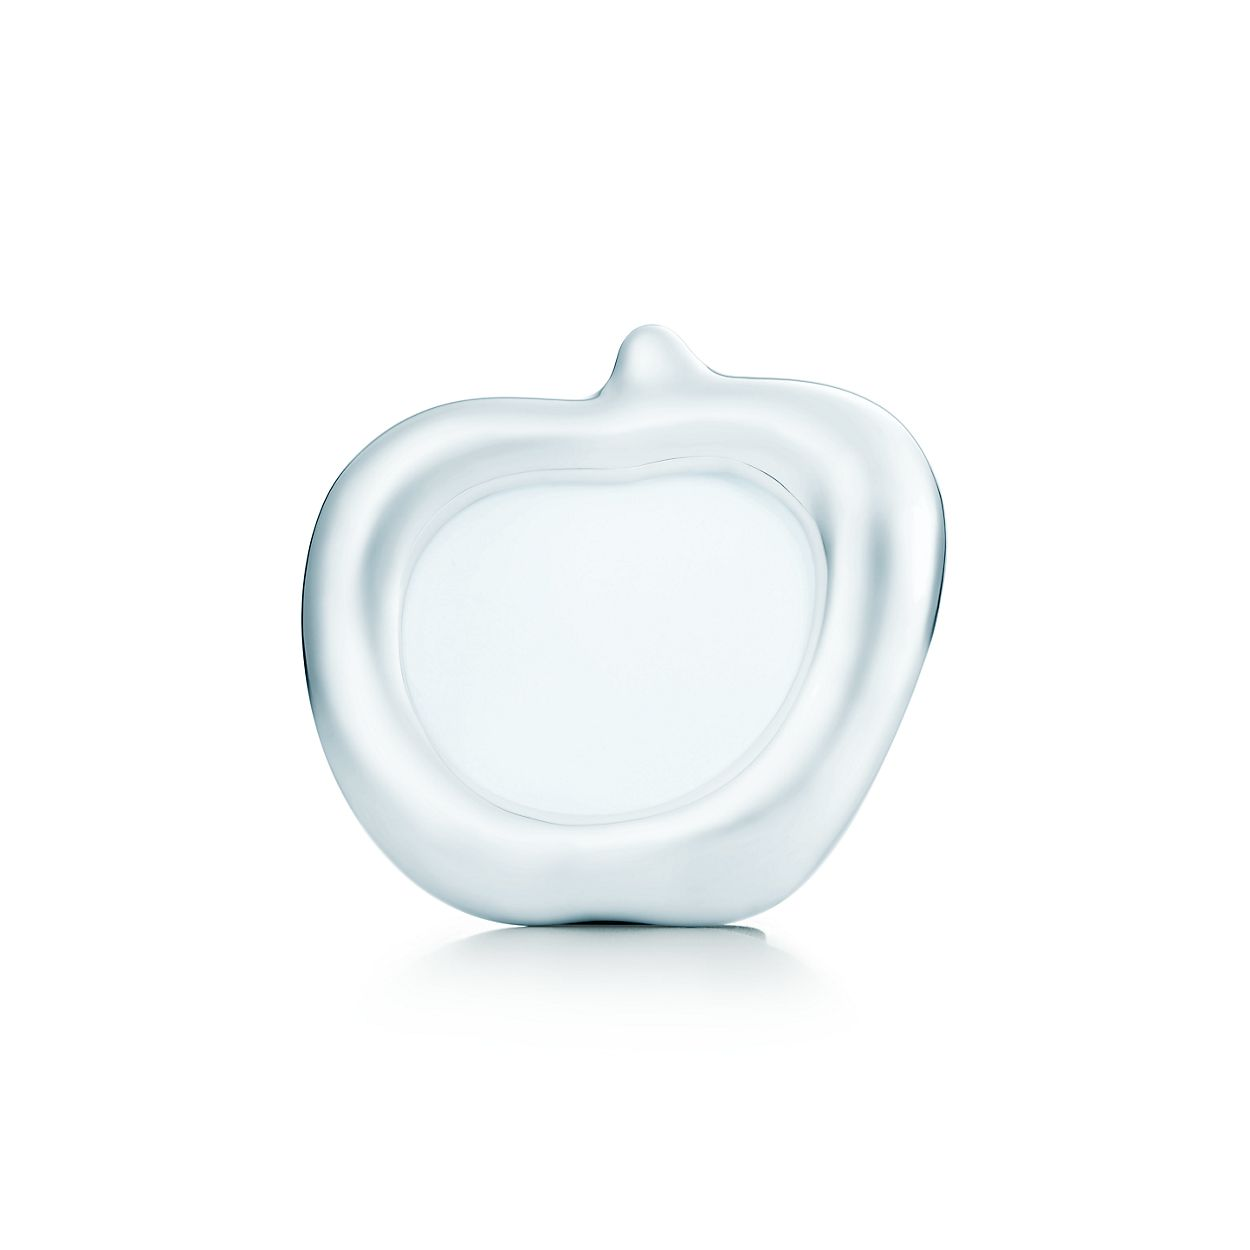 Marco Apple de Elsa Peretti® en plata esterlina. | Tiffany & Co.